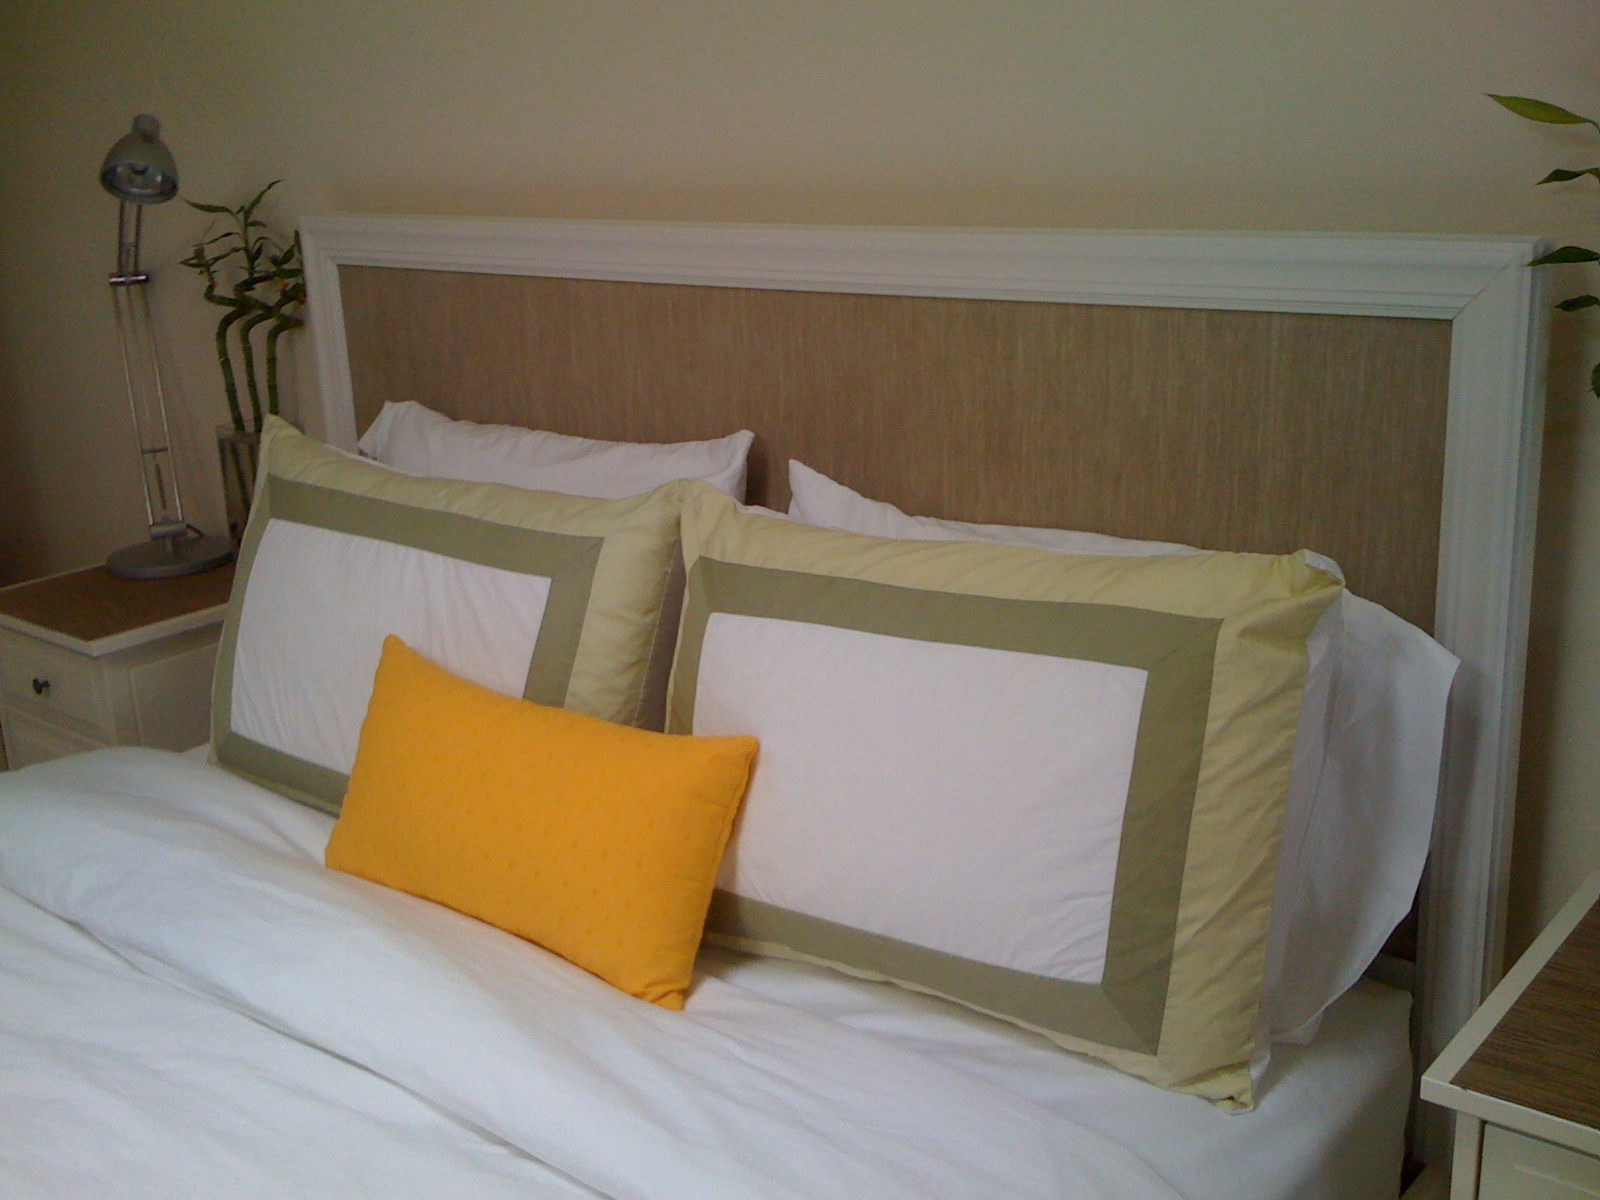 Headboard At Ikea Give Your Bedroom More Storages And